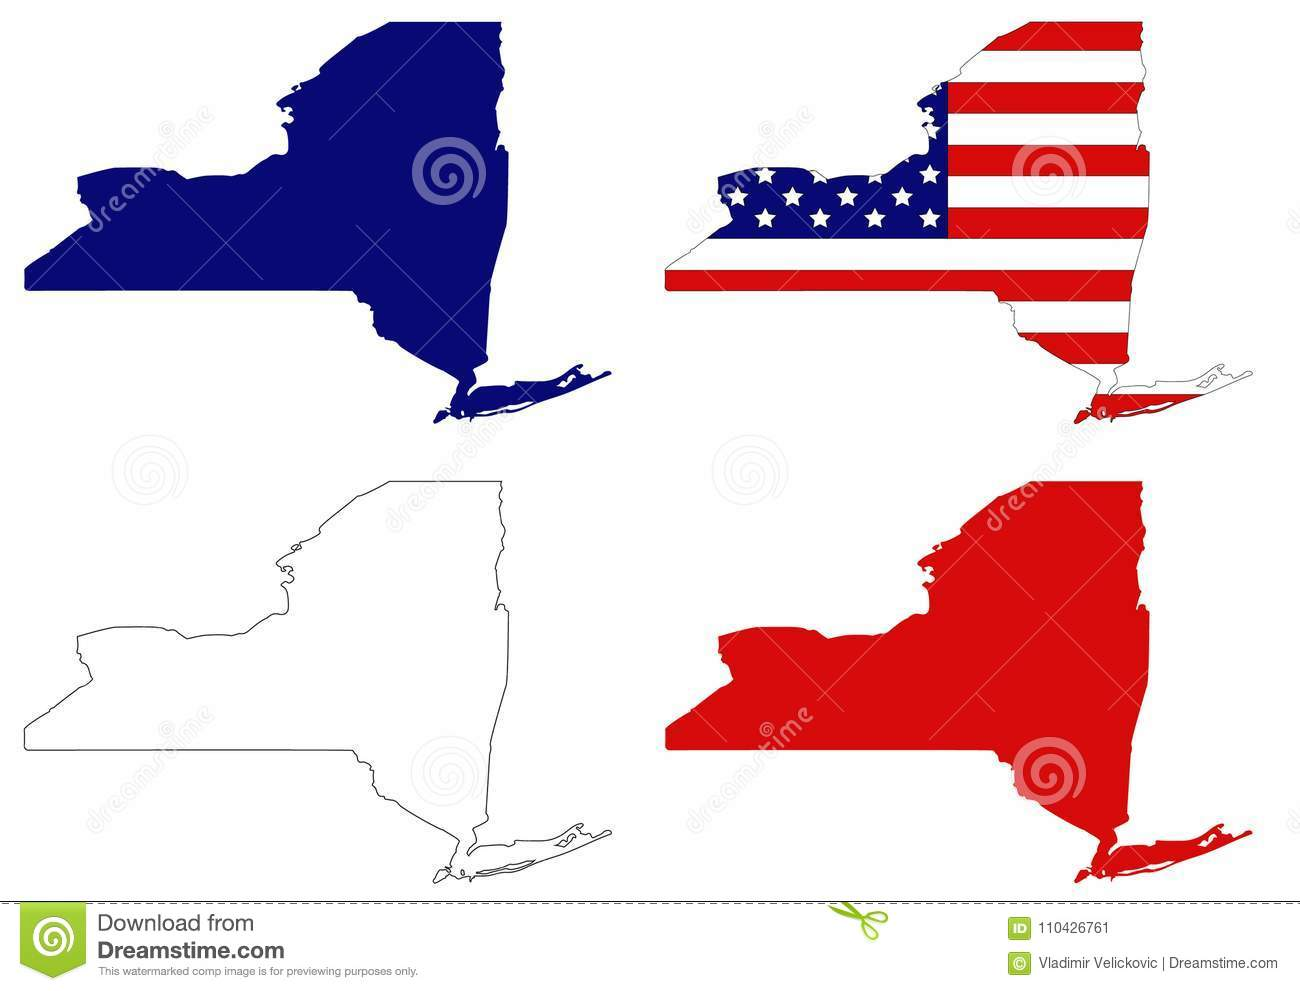 New York State Map With USA Flag - State In The Northeastern United ...